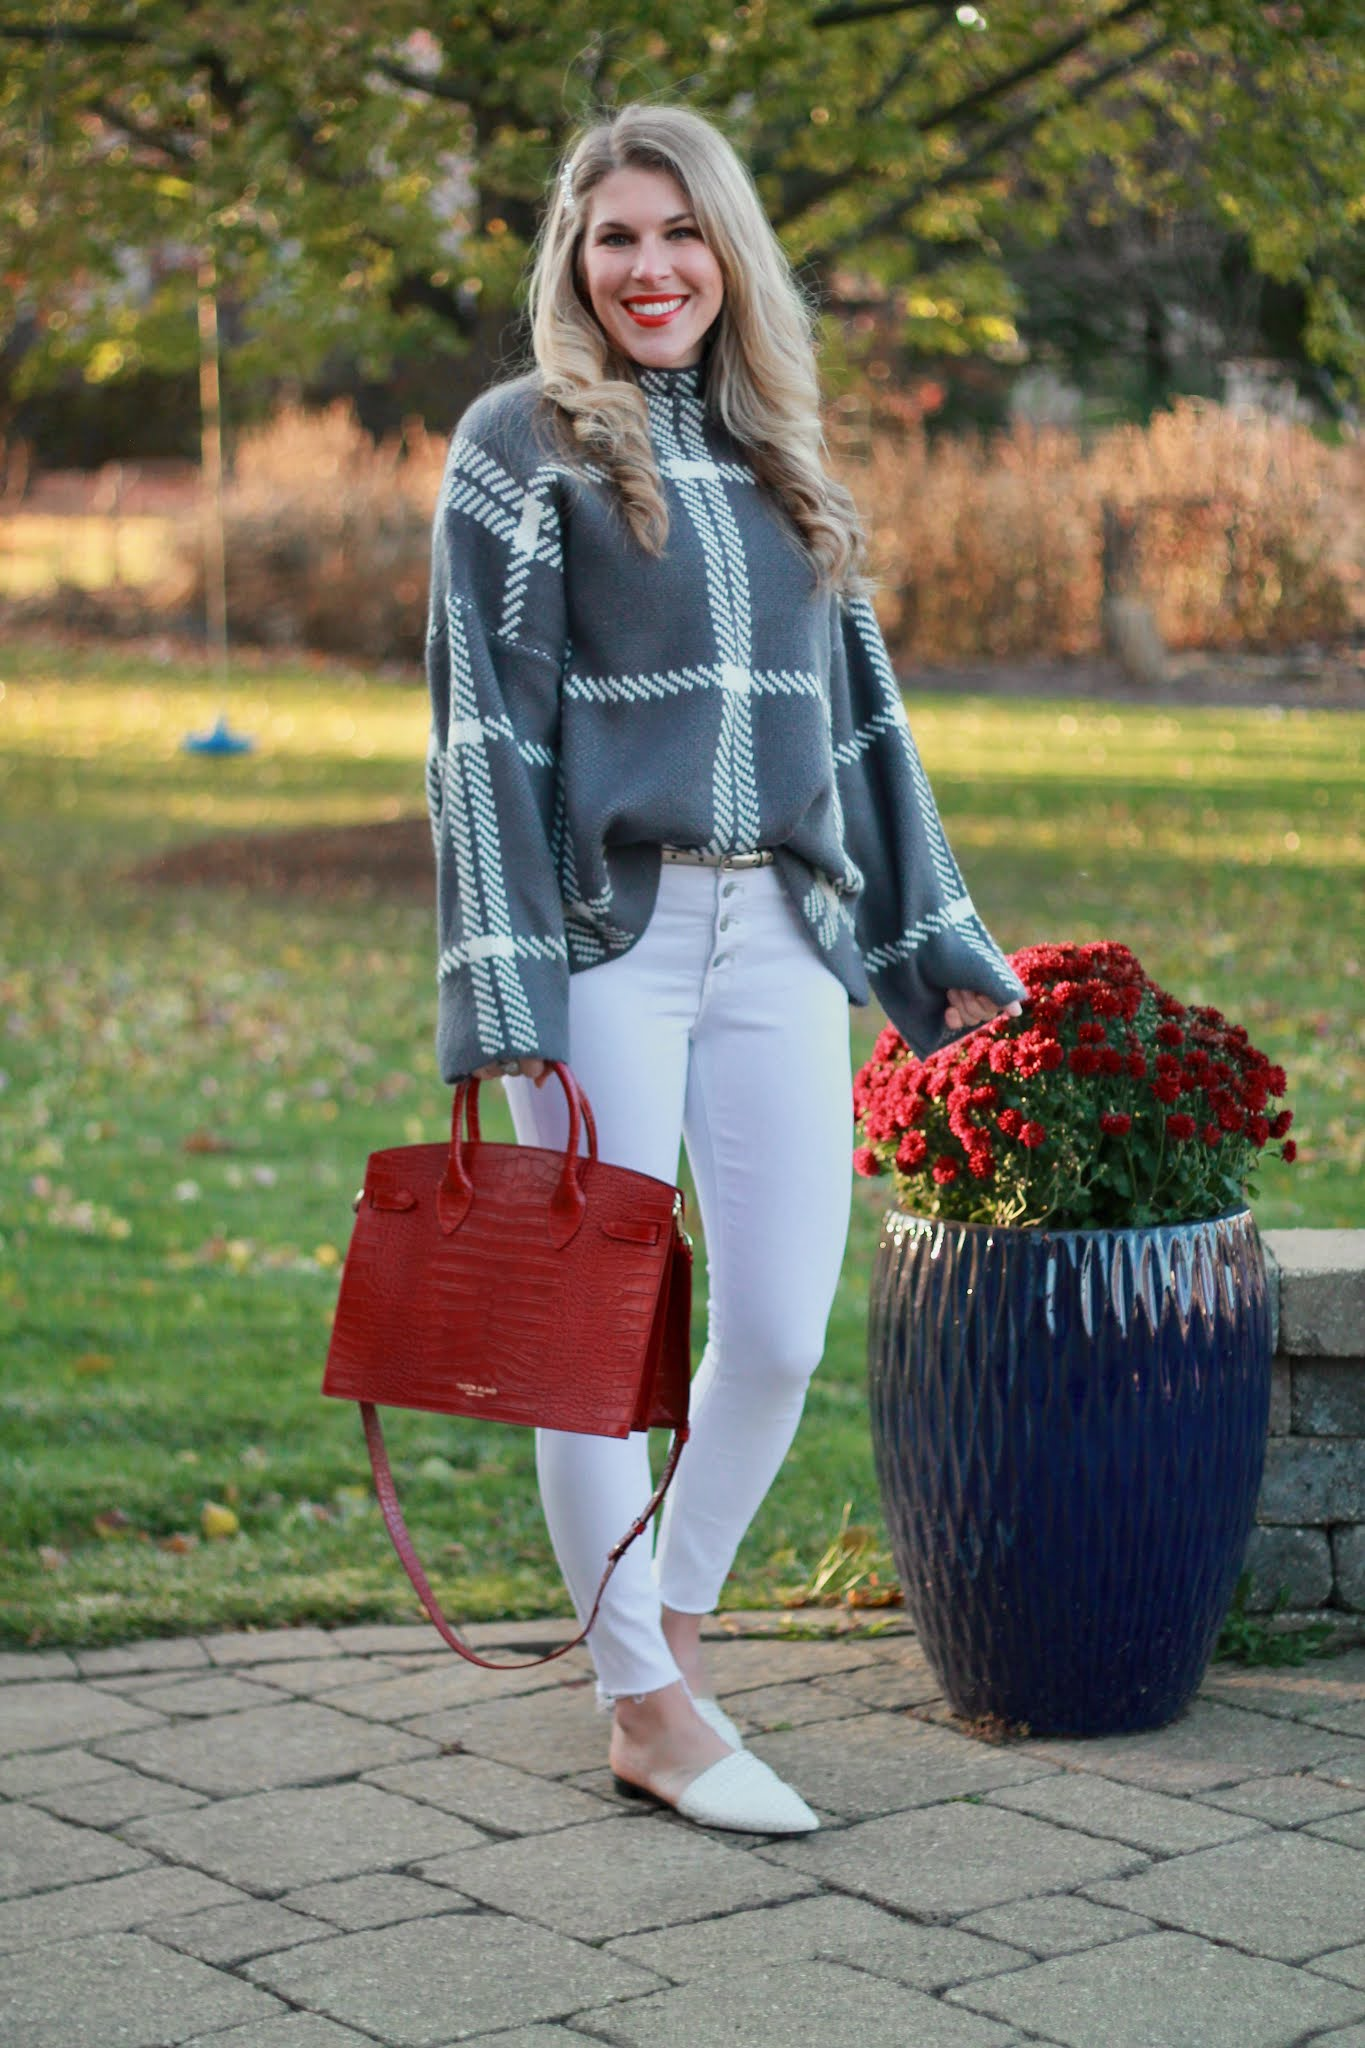 statement bag for winter, teddy blake review, red crocodile bag, white jeans, grey windowpane sweater, white mules